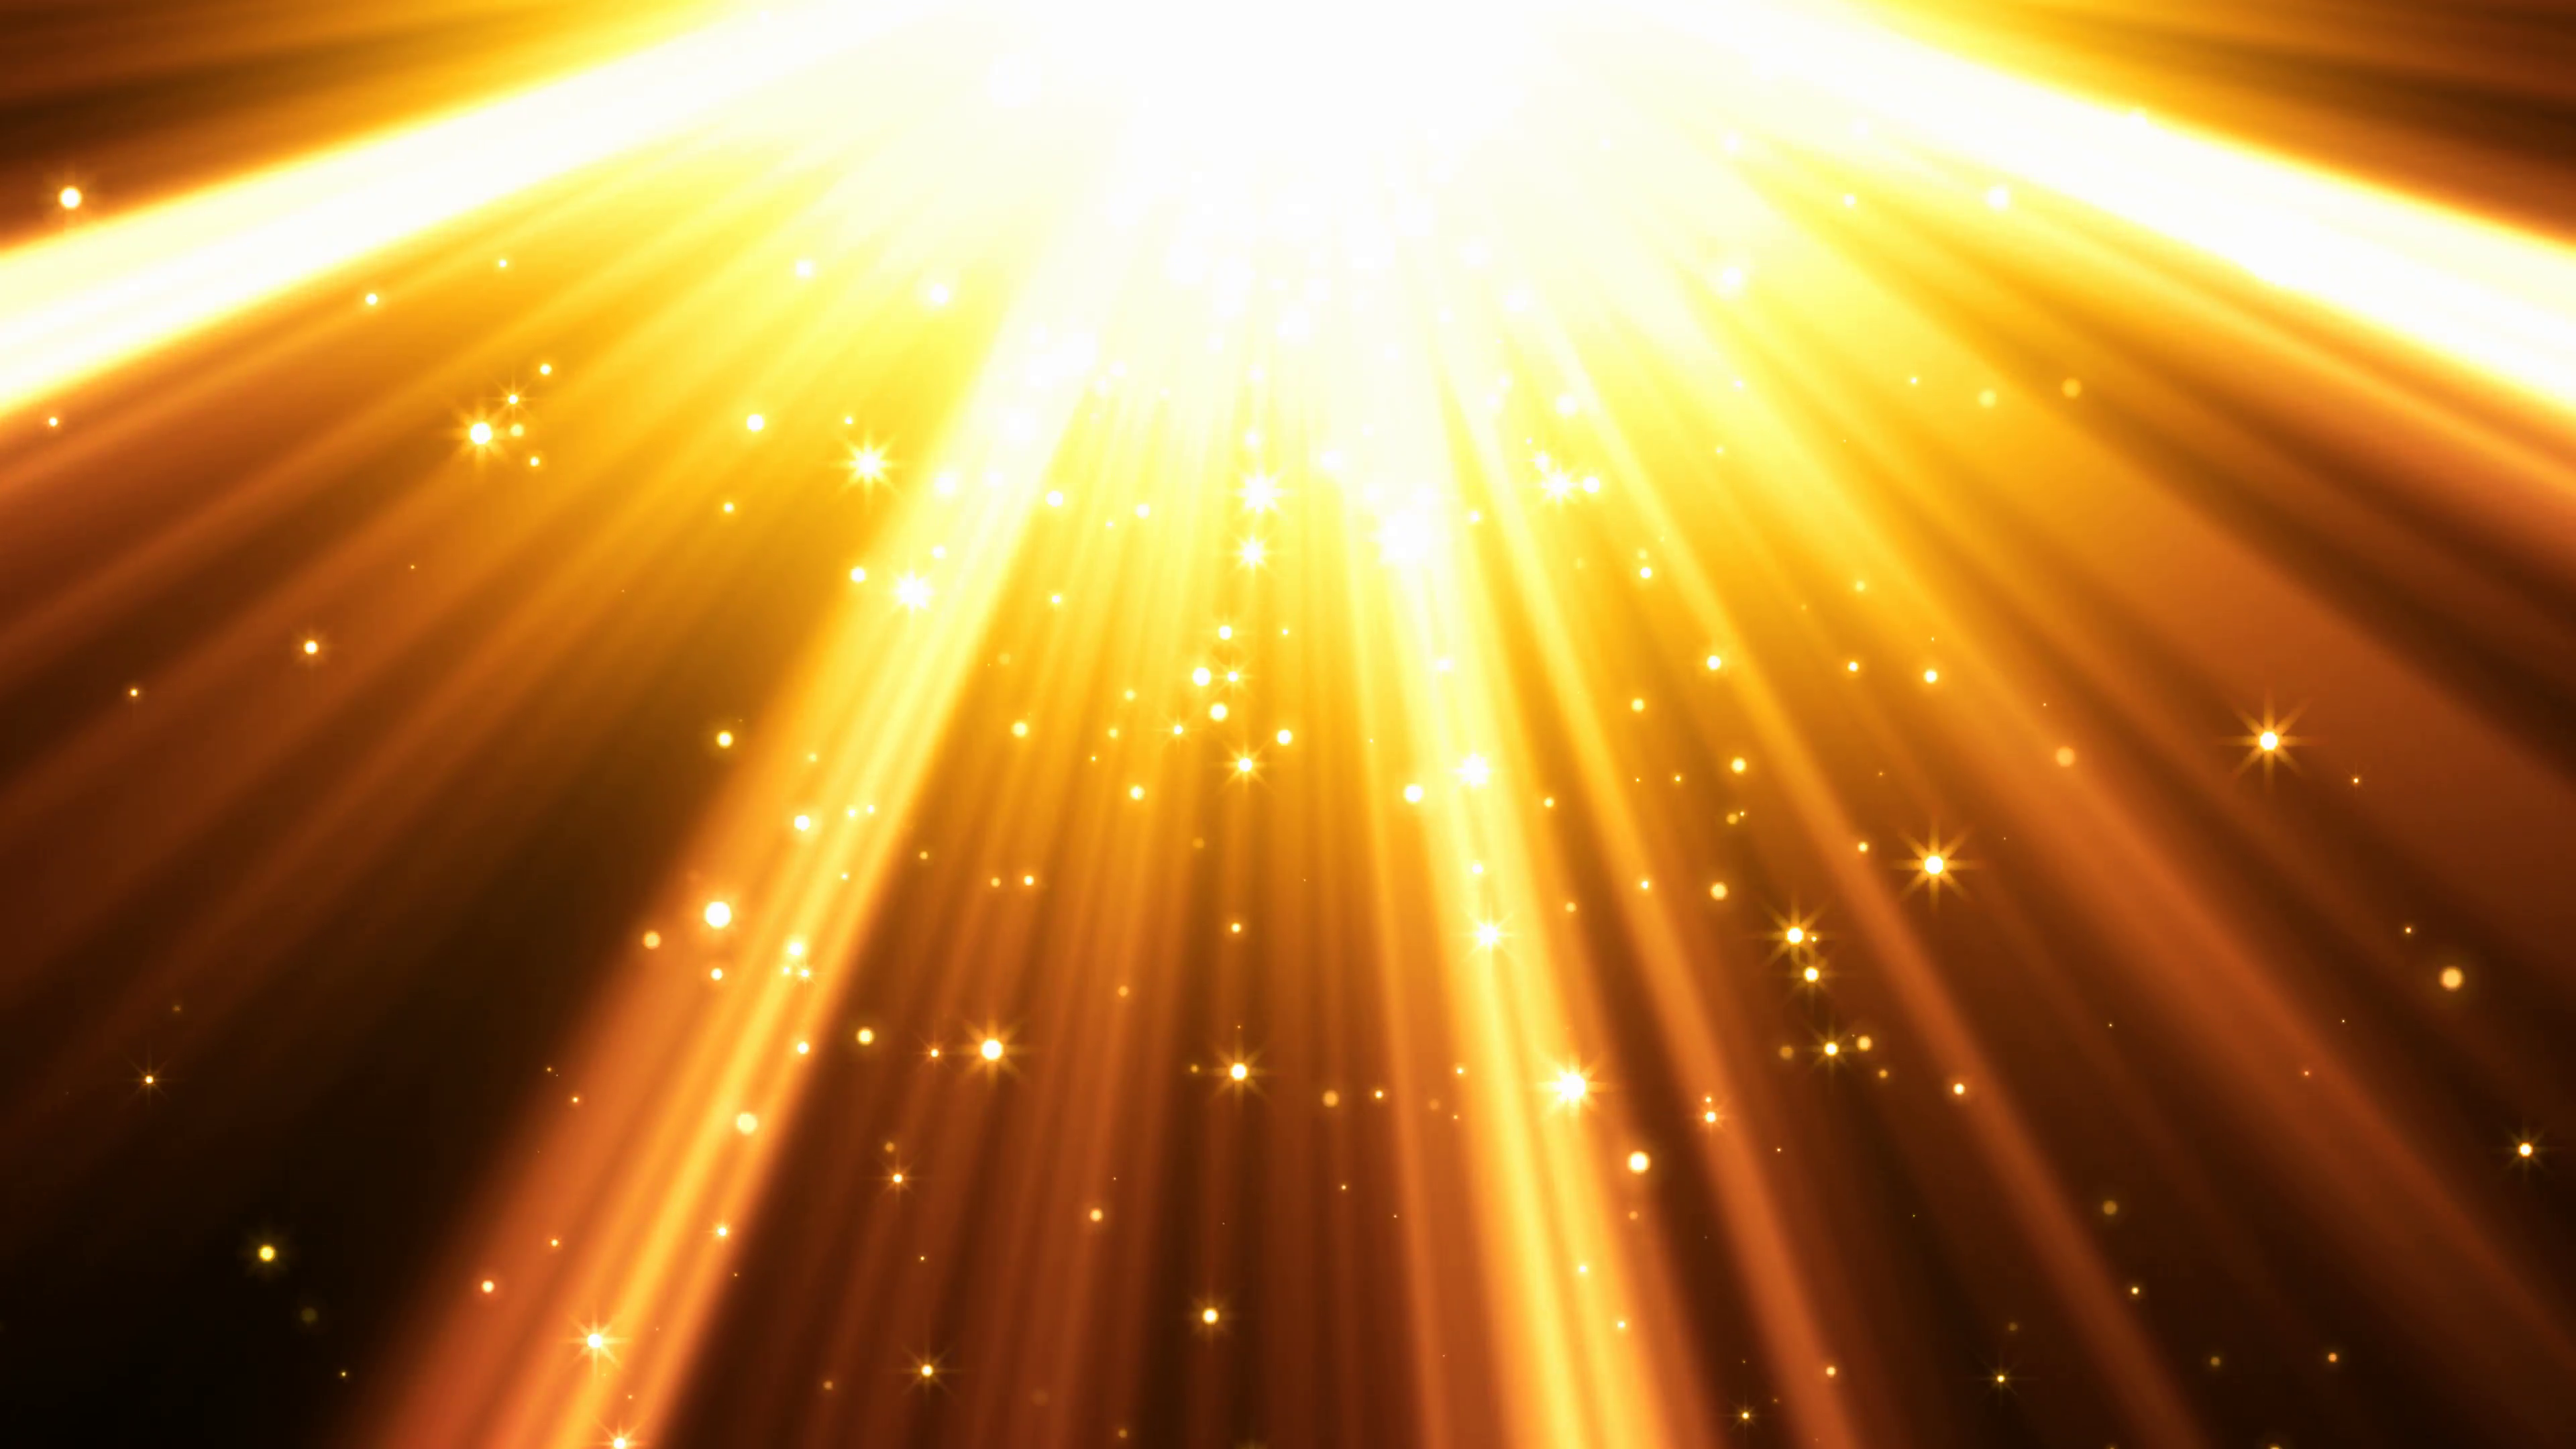 Golden Light Rays Background Motion Background - VideoBlocks